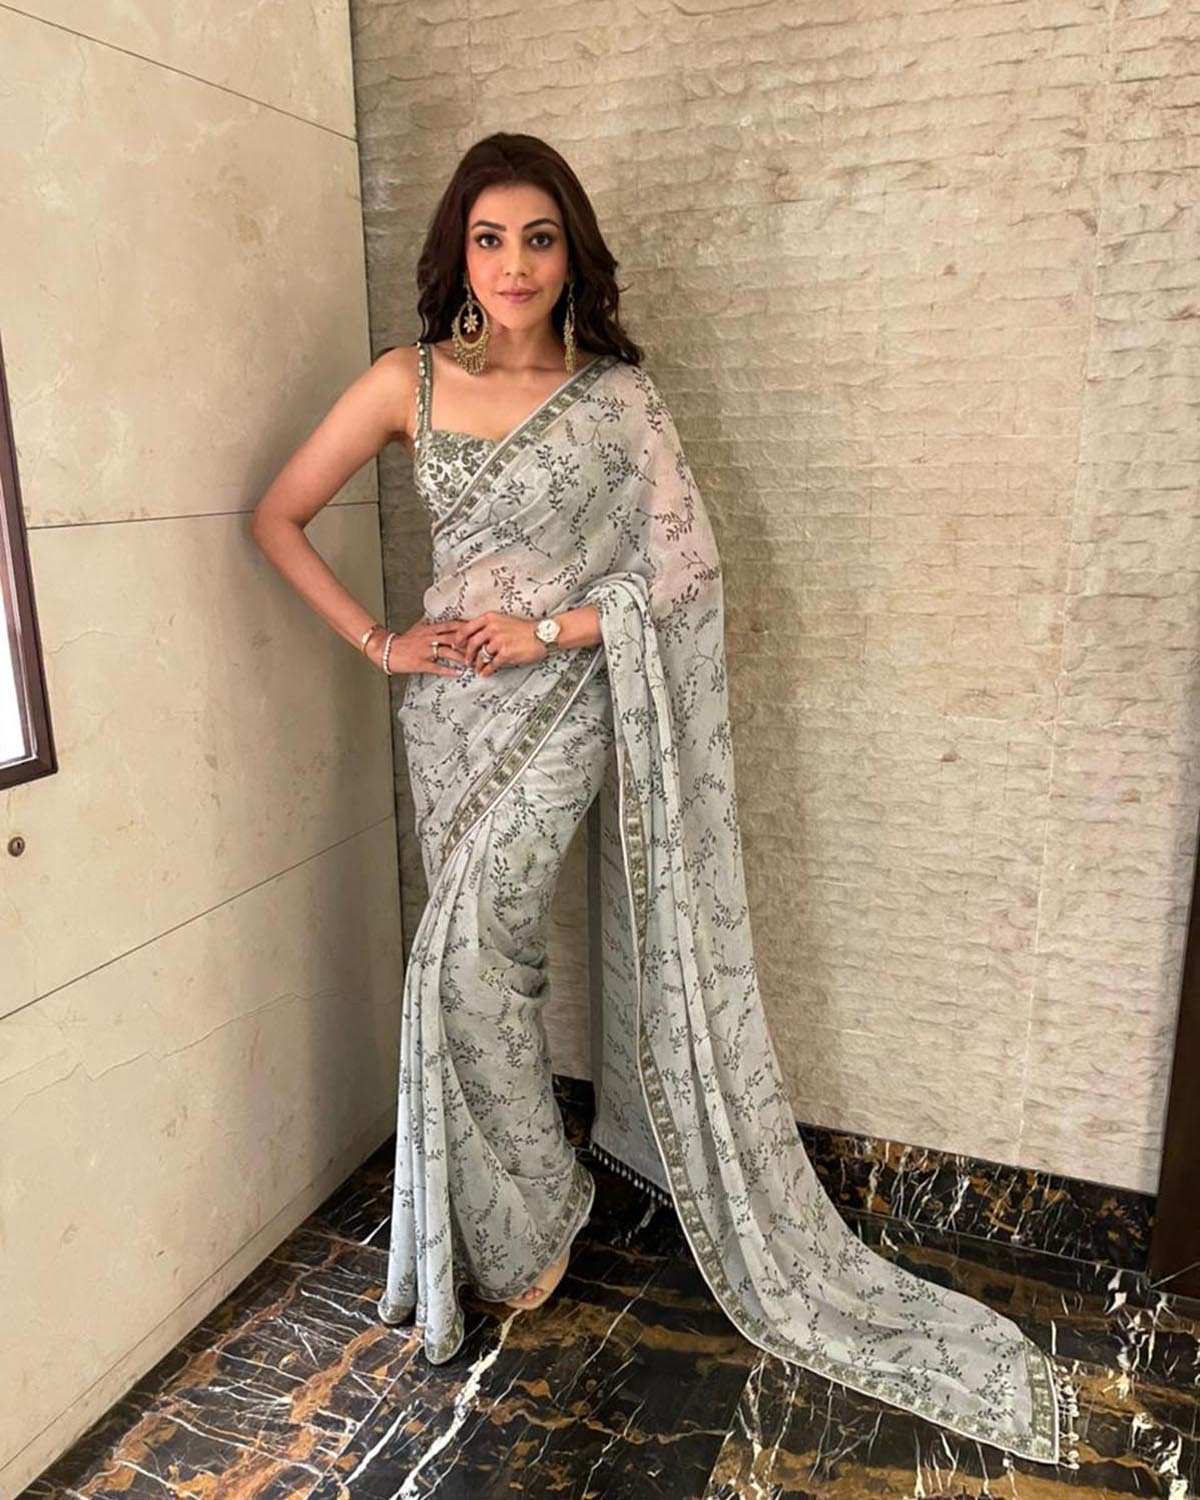 Mother of Pearl and Mint Print Sari Set